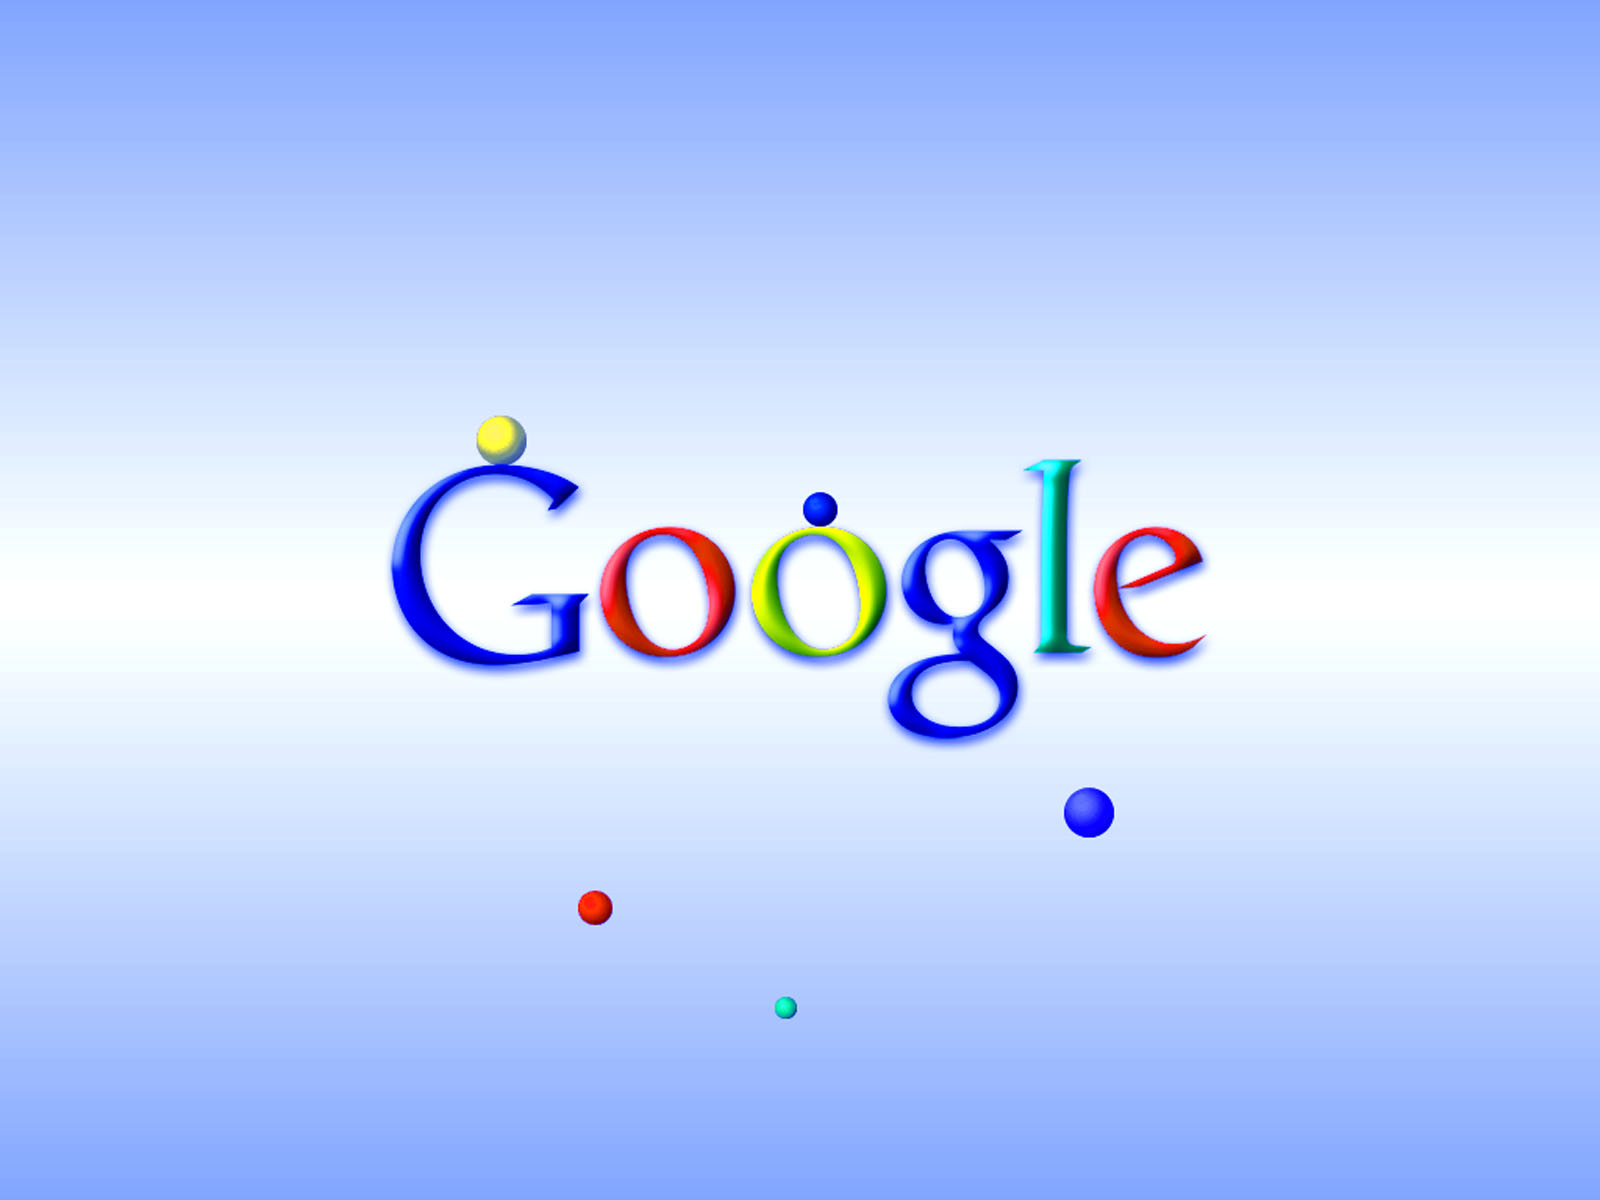 wallpapers: Google Wallpapers Free